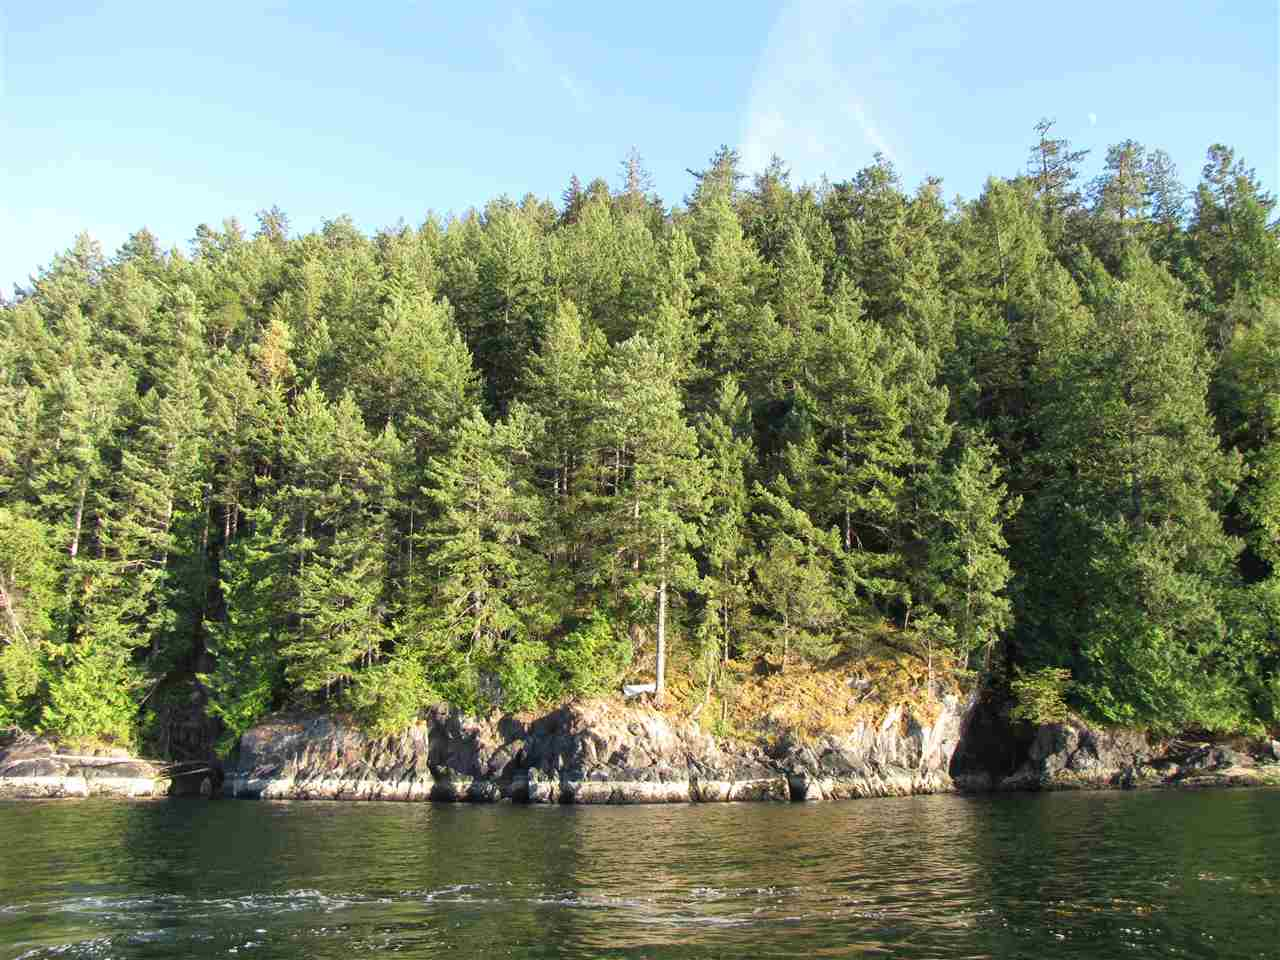 Off-the-grid waterfront building lot on Bowen Island. This 0.843 acre lot features a stunning view facing Gambier Island and the Sea-to-Sky country beyond. Flat benches for potential building sites, and lots of privacy. Rare opportunity to build your own island getaway. No road access.